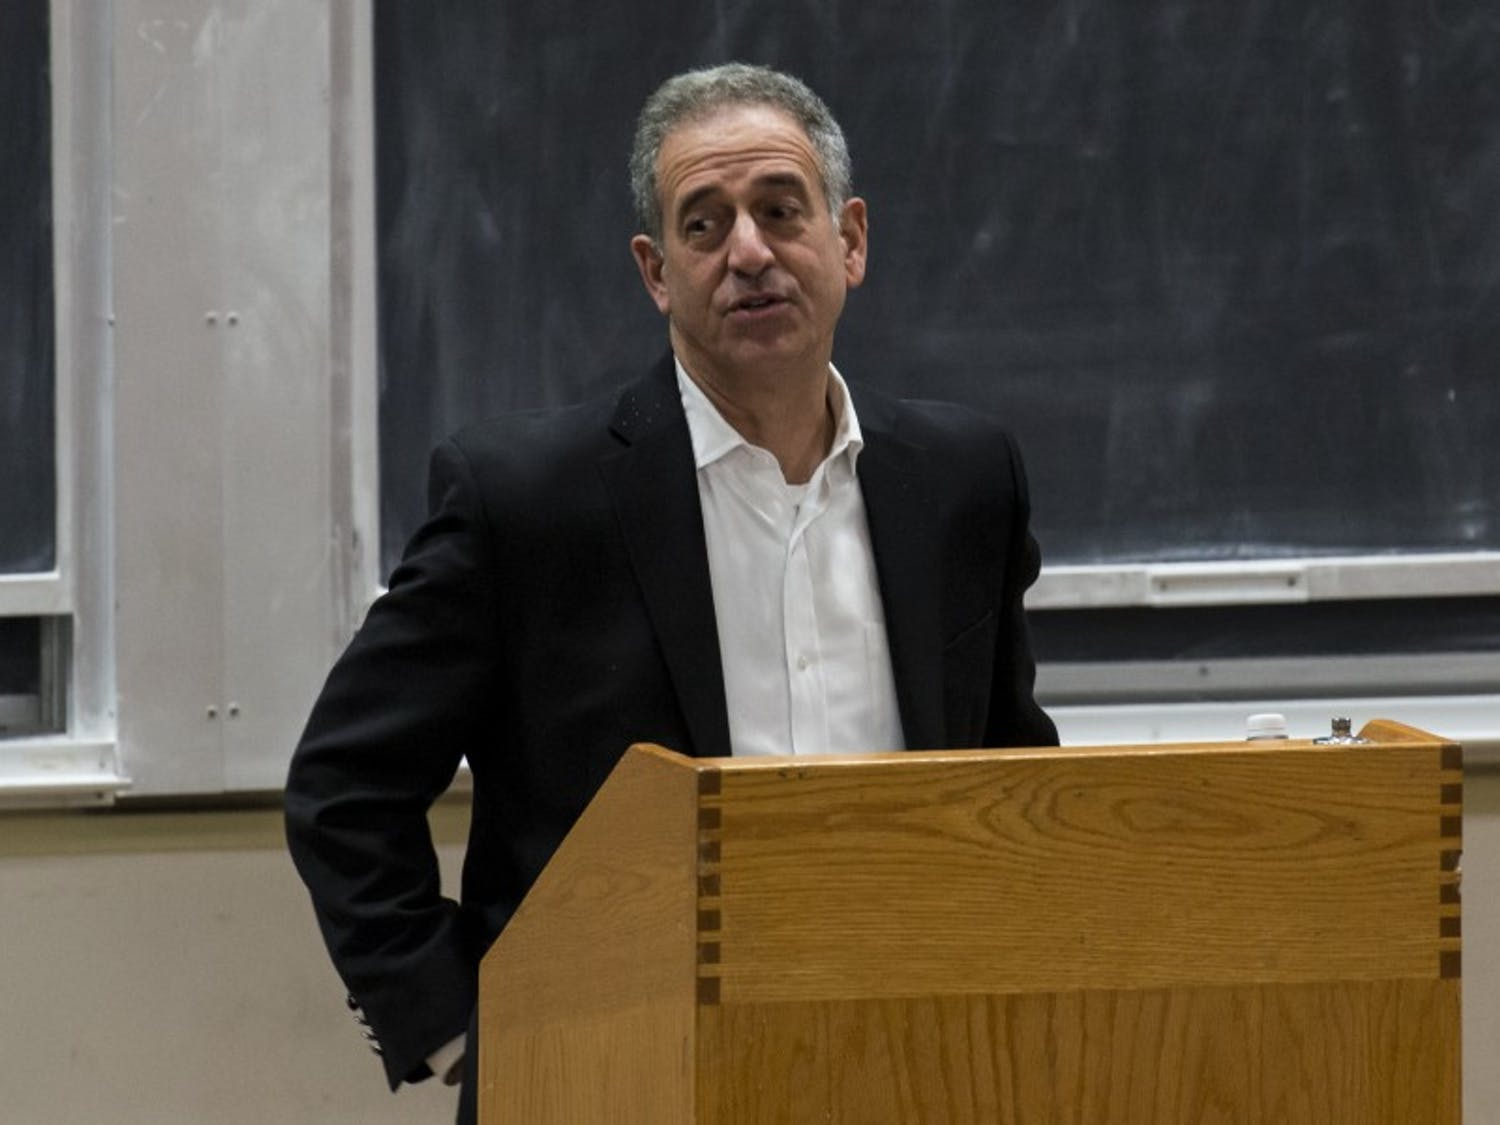 Democratic challenger Russ Feingold has surged to a 10 point lead over incumbent Ron Johnson in the U.S. Senate race.